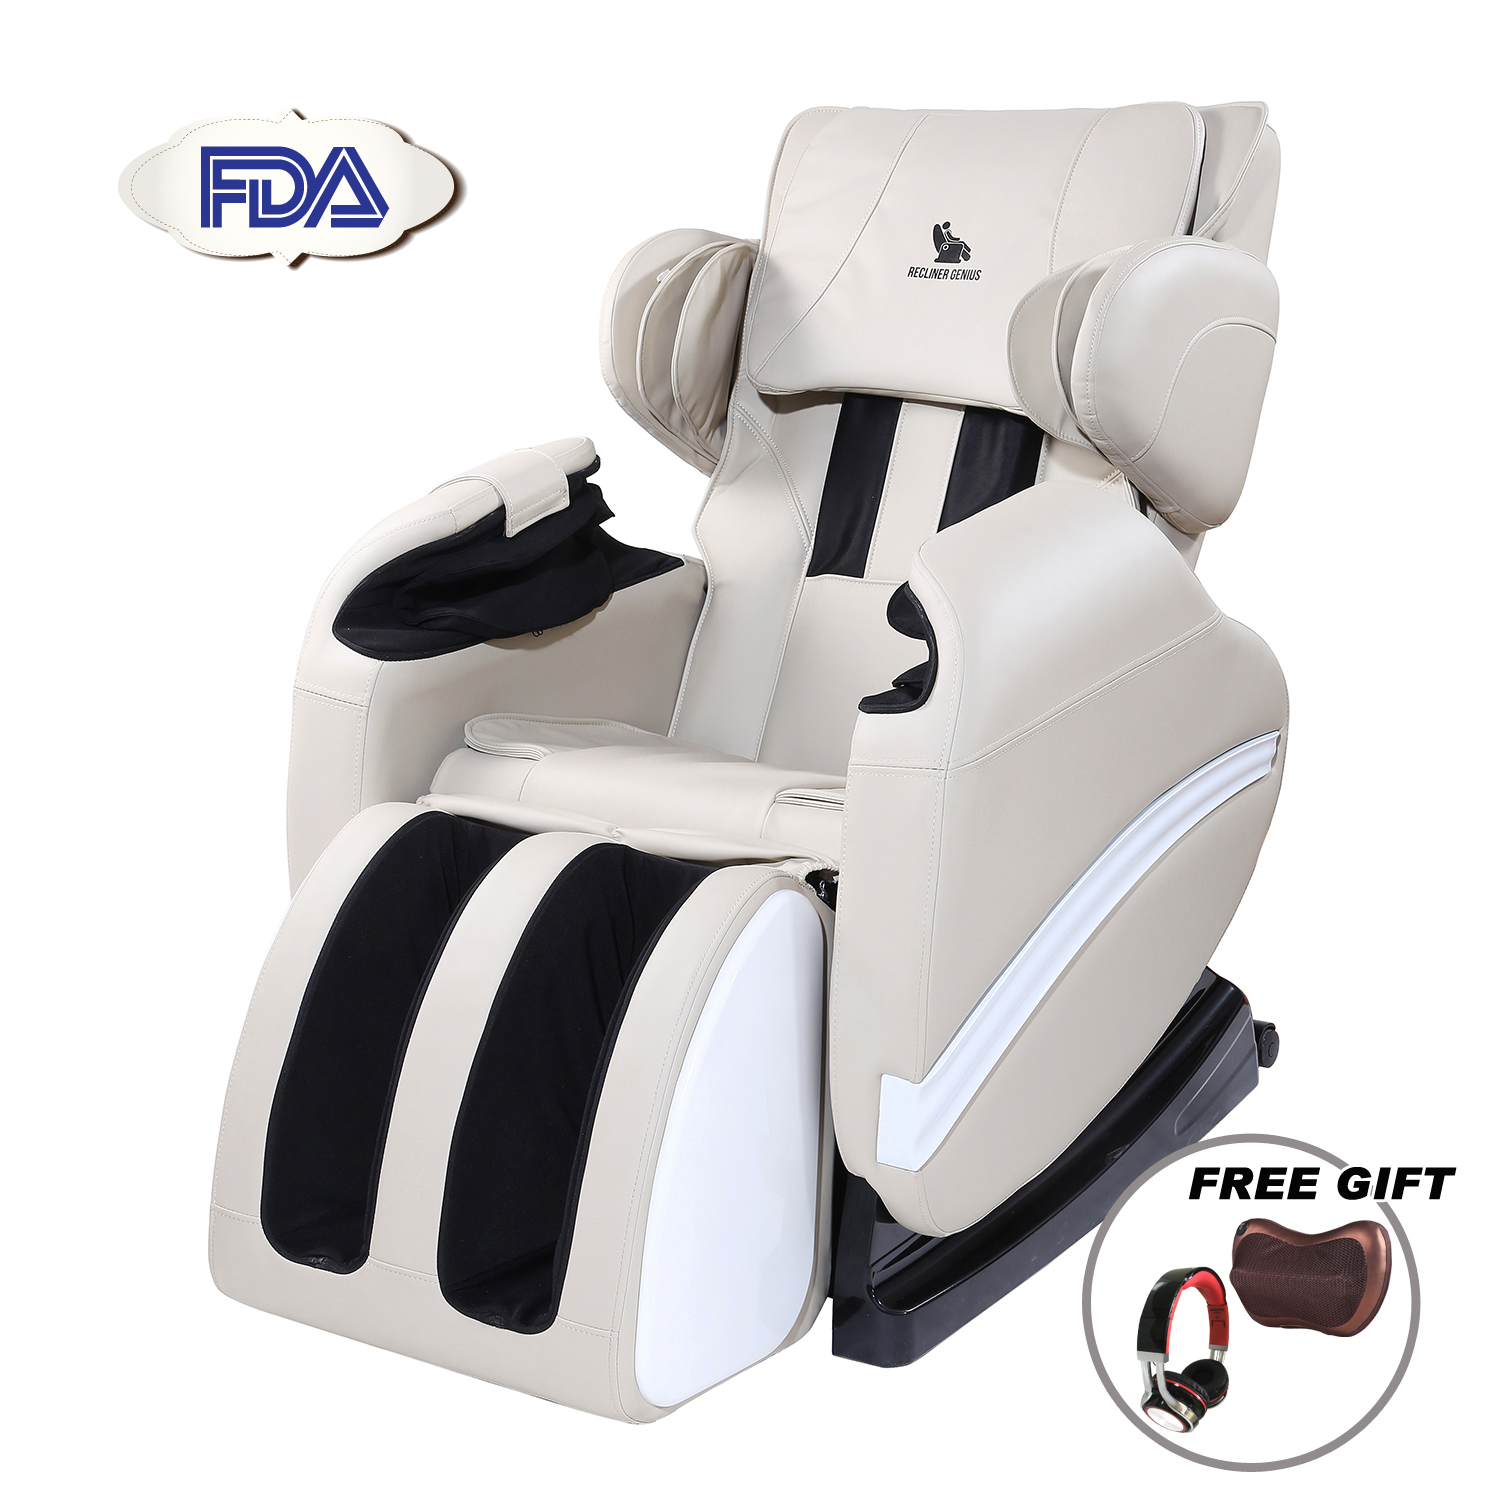 shiatsu massage chair recliner w heat stretched foot rest 06c upholstered vintage chairs full body electric armchair zero